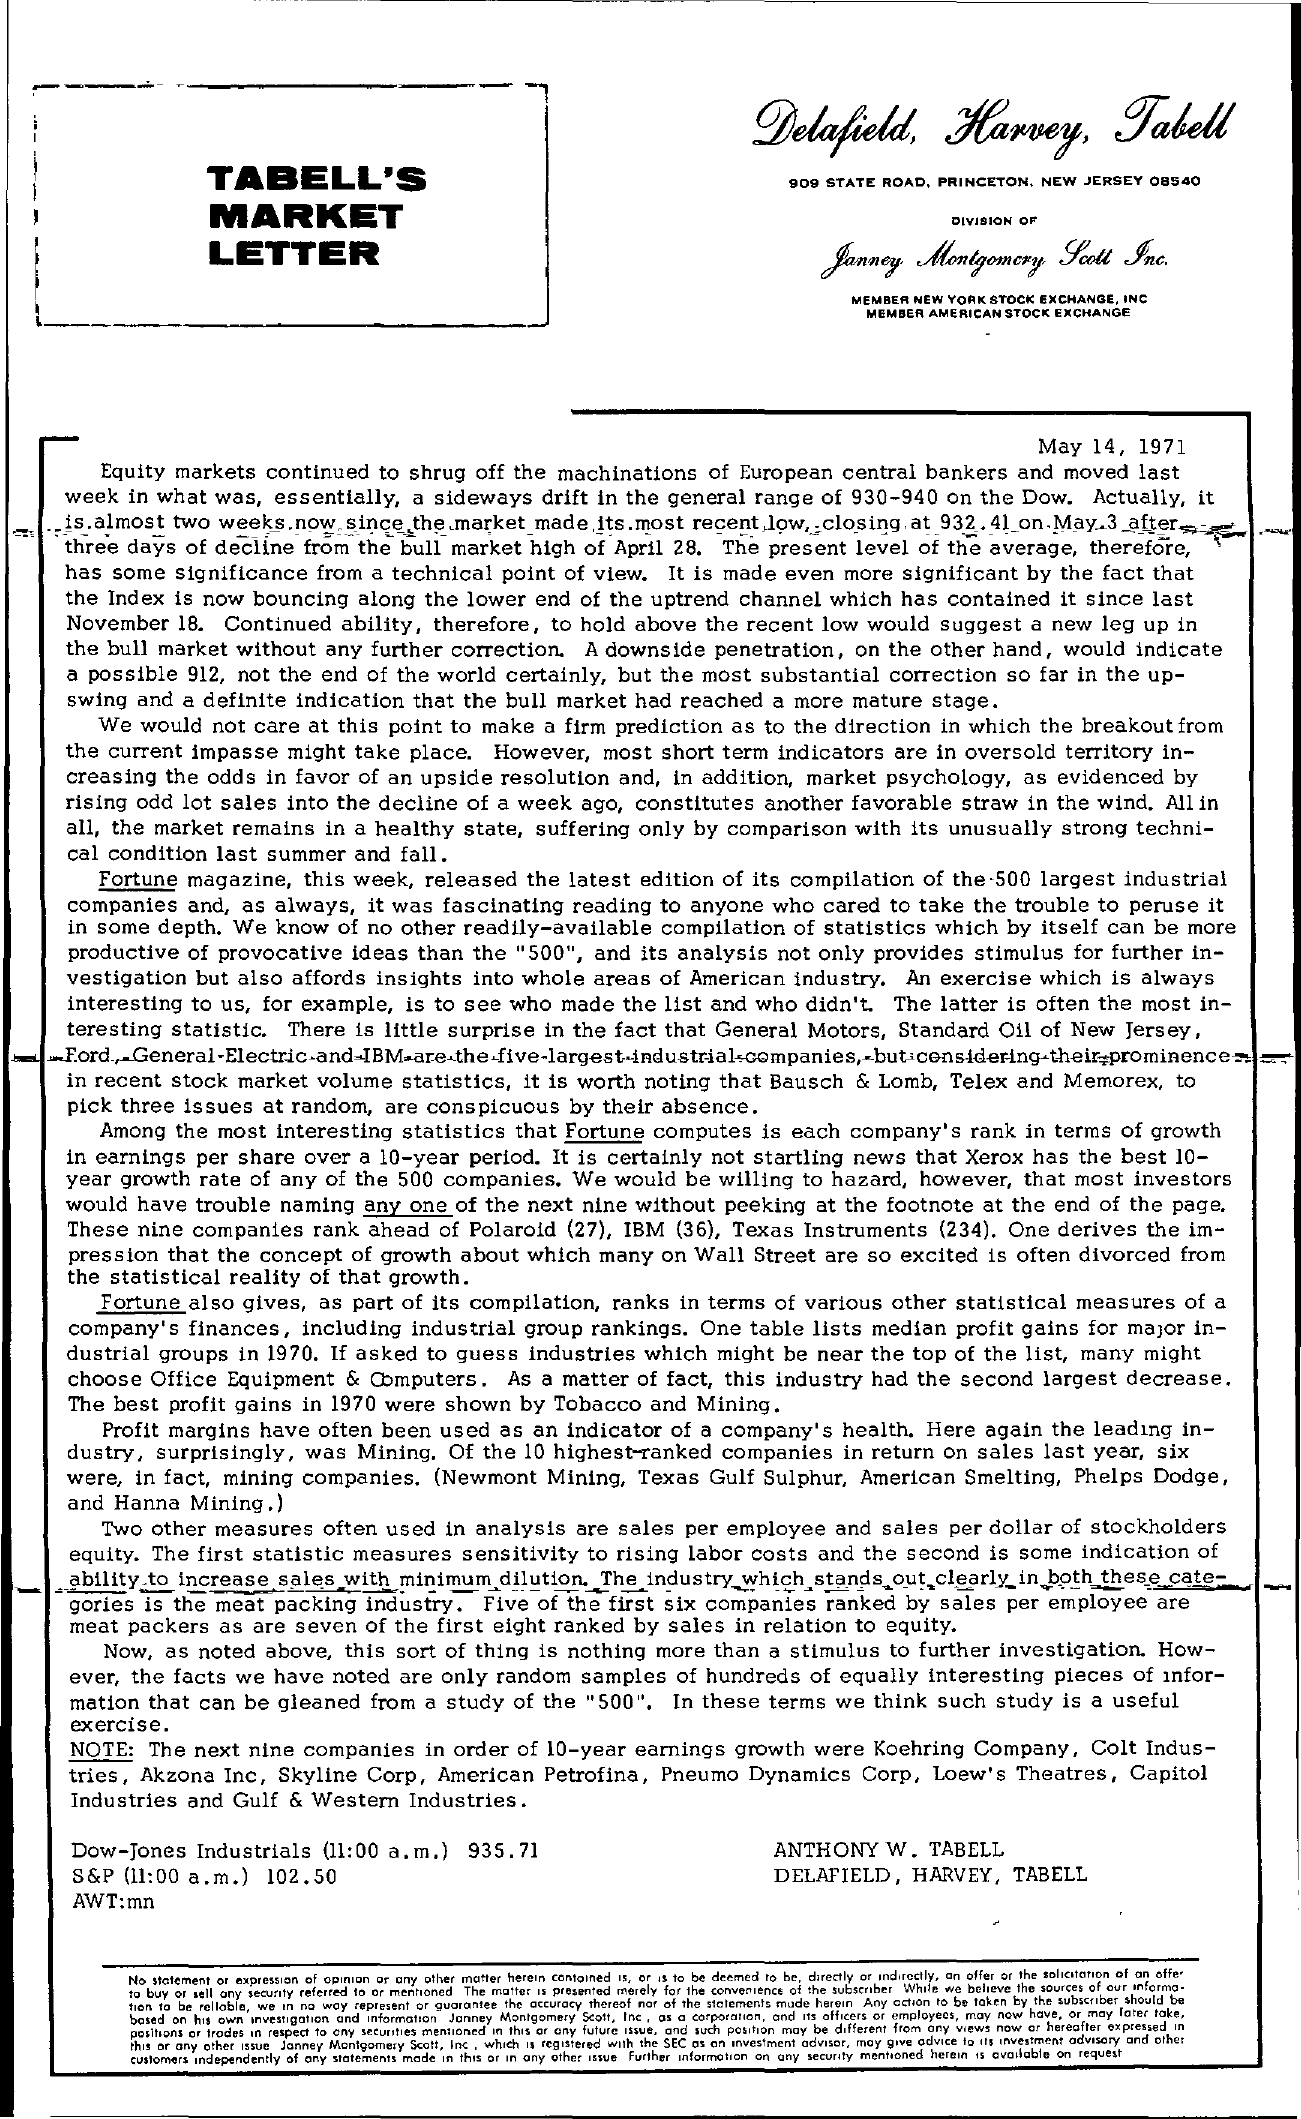 Tabell's Market Letter - May 14, 1971